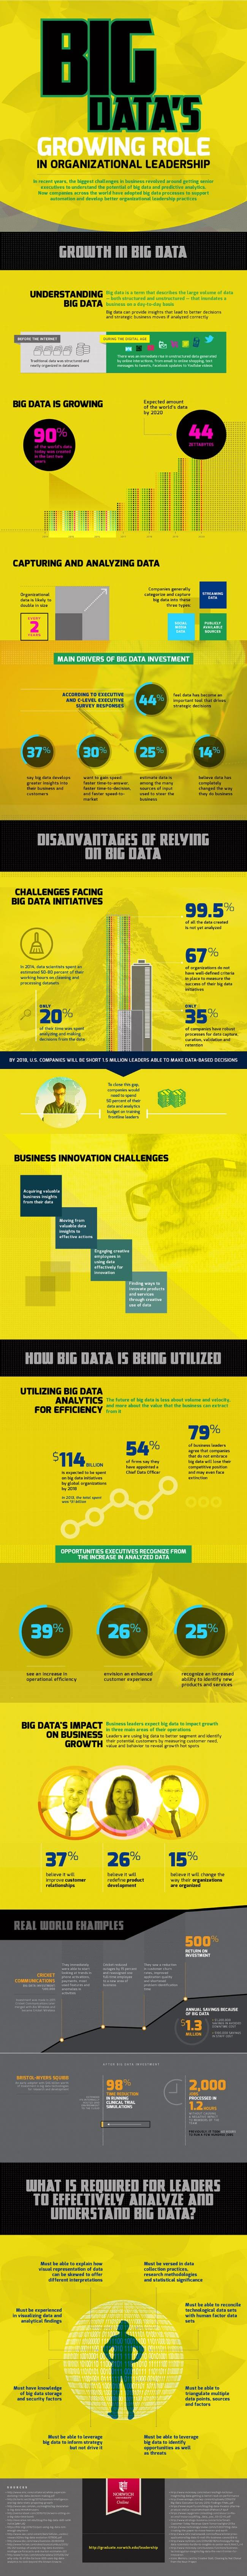 Image titled big data s growing role in organizational leadership